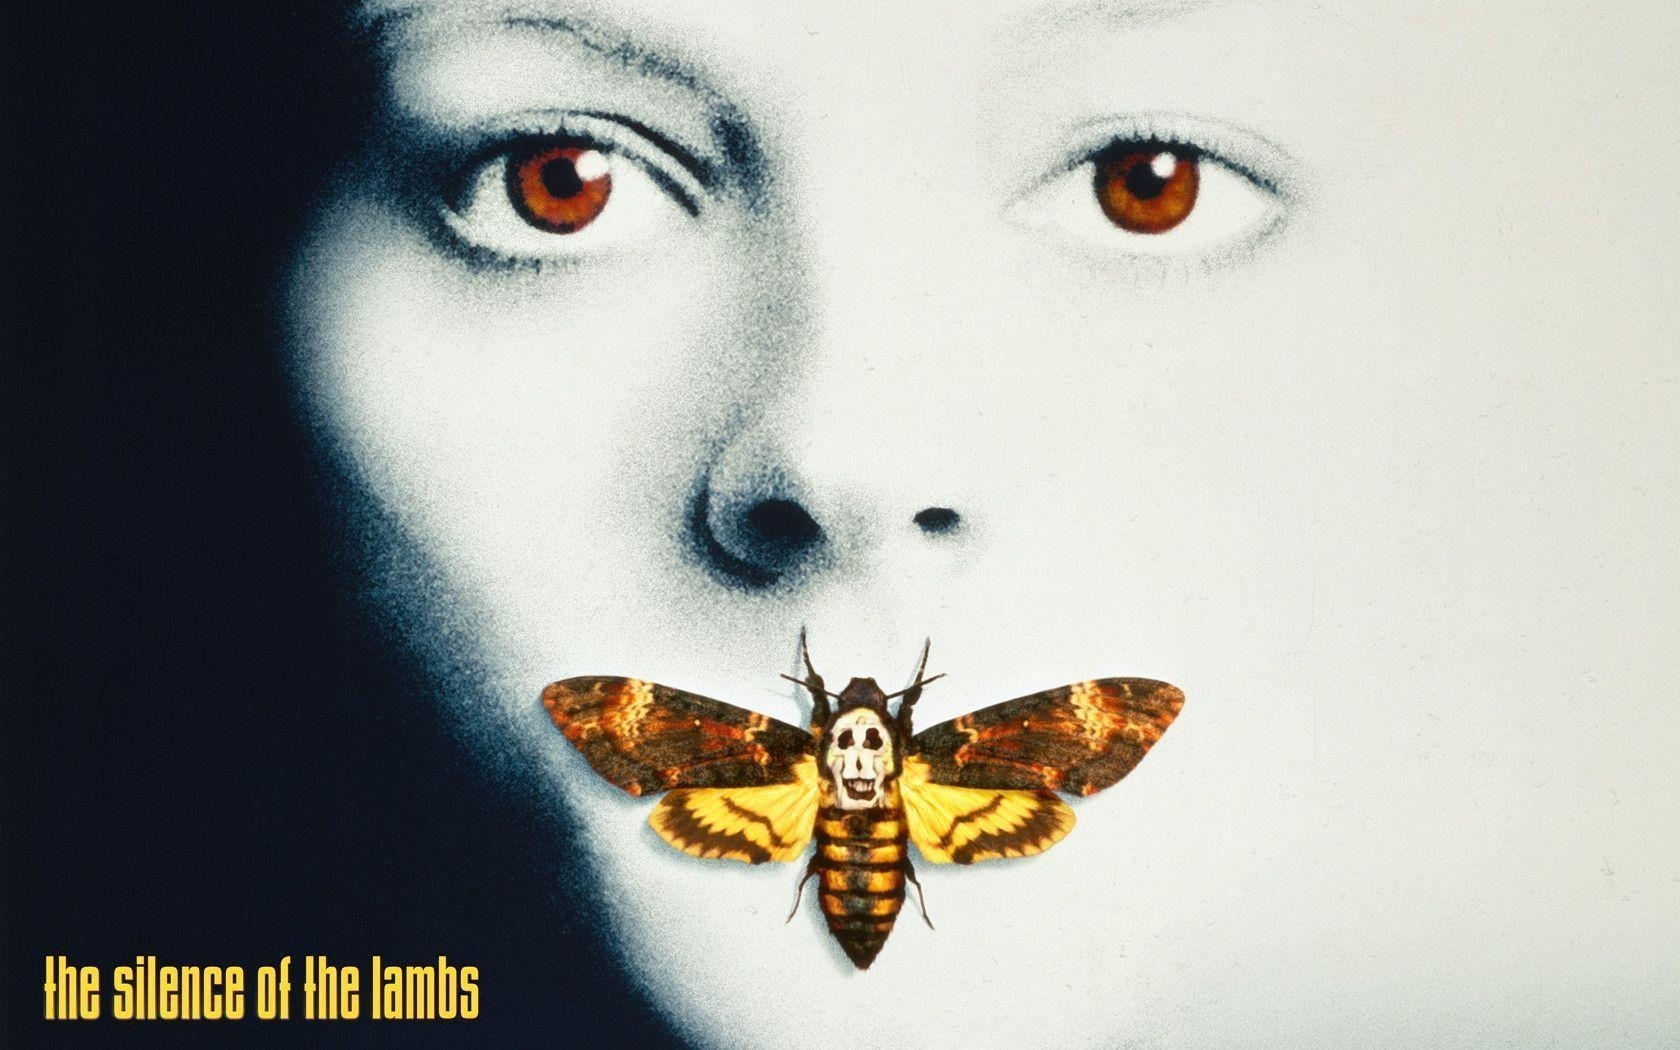 silence of the lambs wallpapers - wallpaper cave